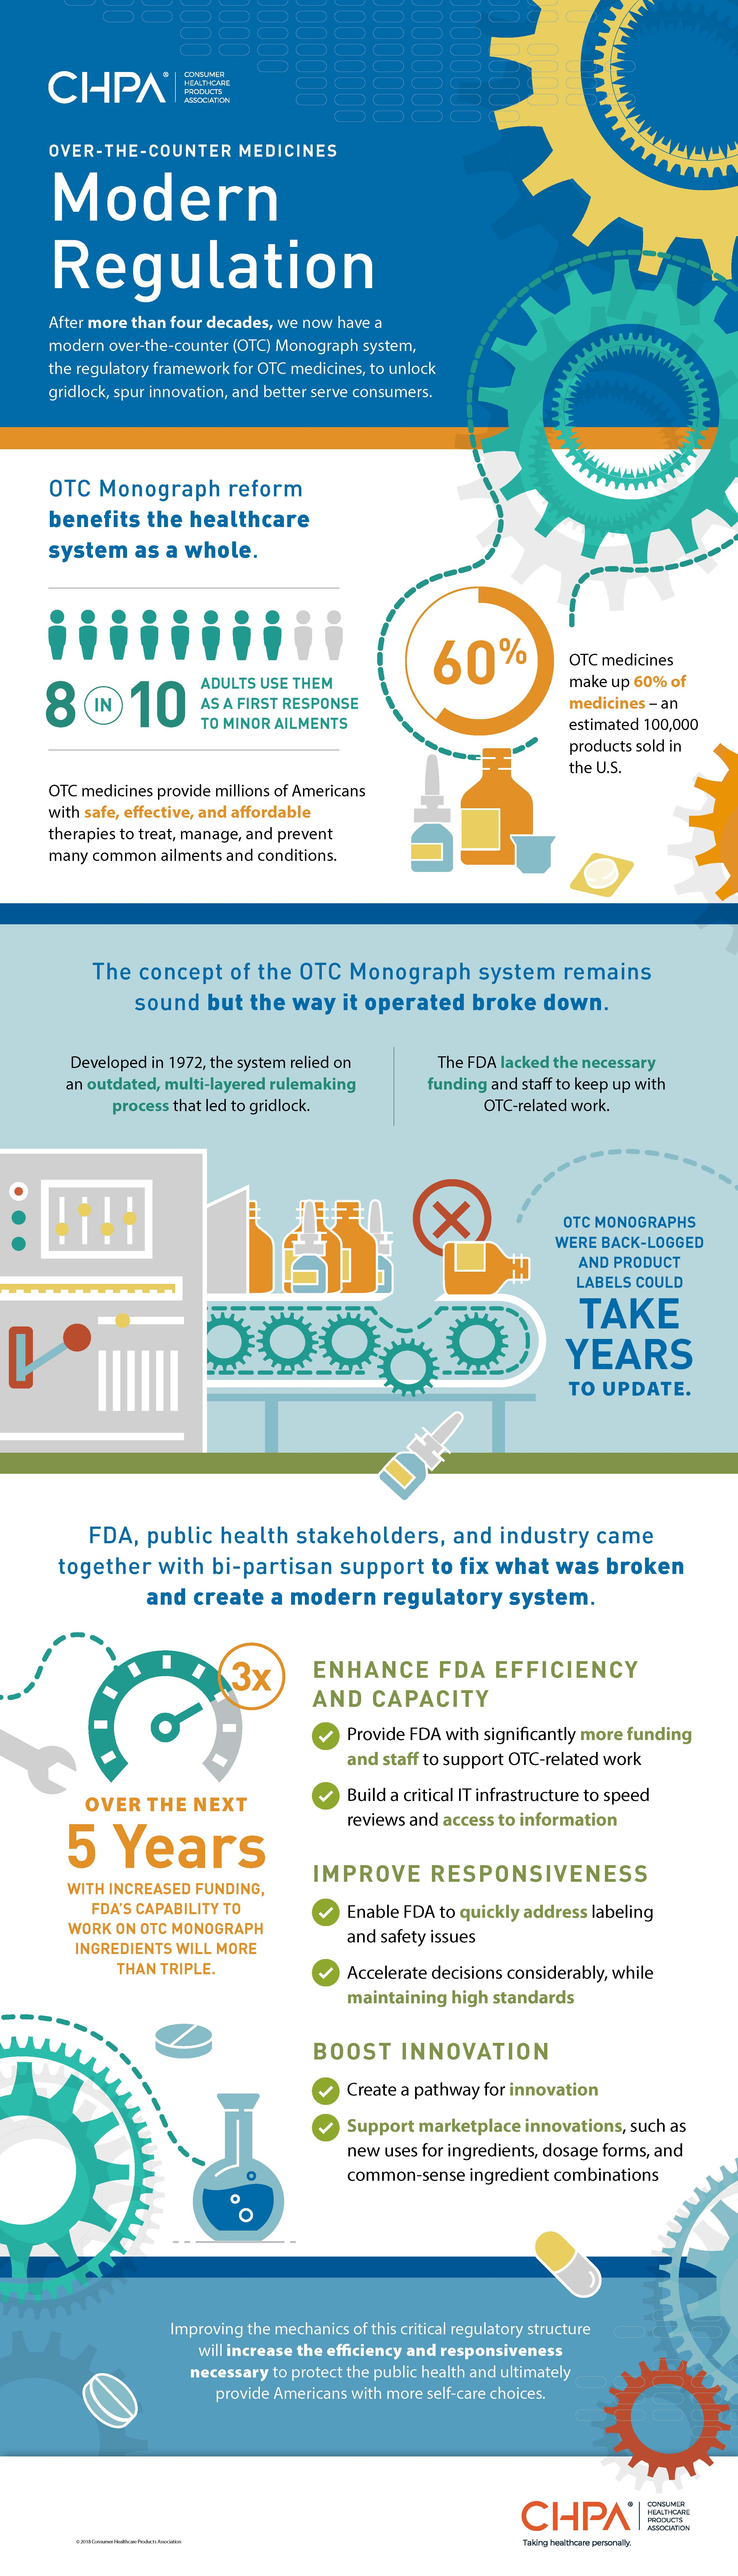 long vertical infographic outlining the highlights of OTC monograph reform